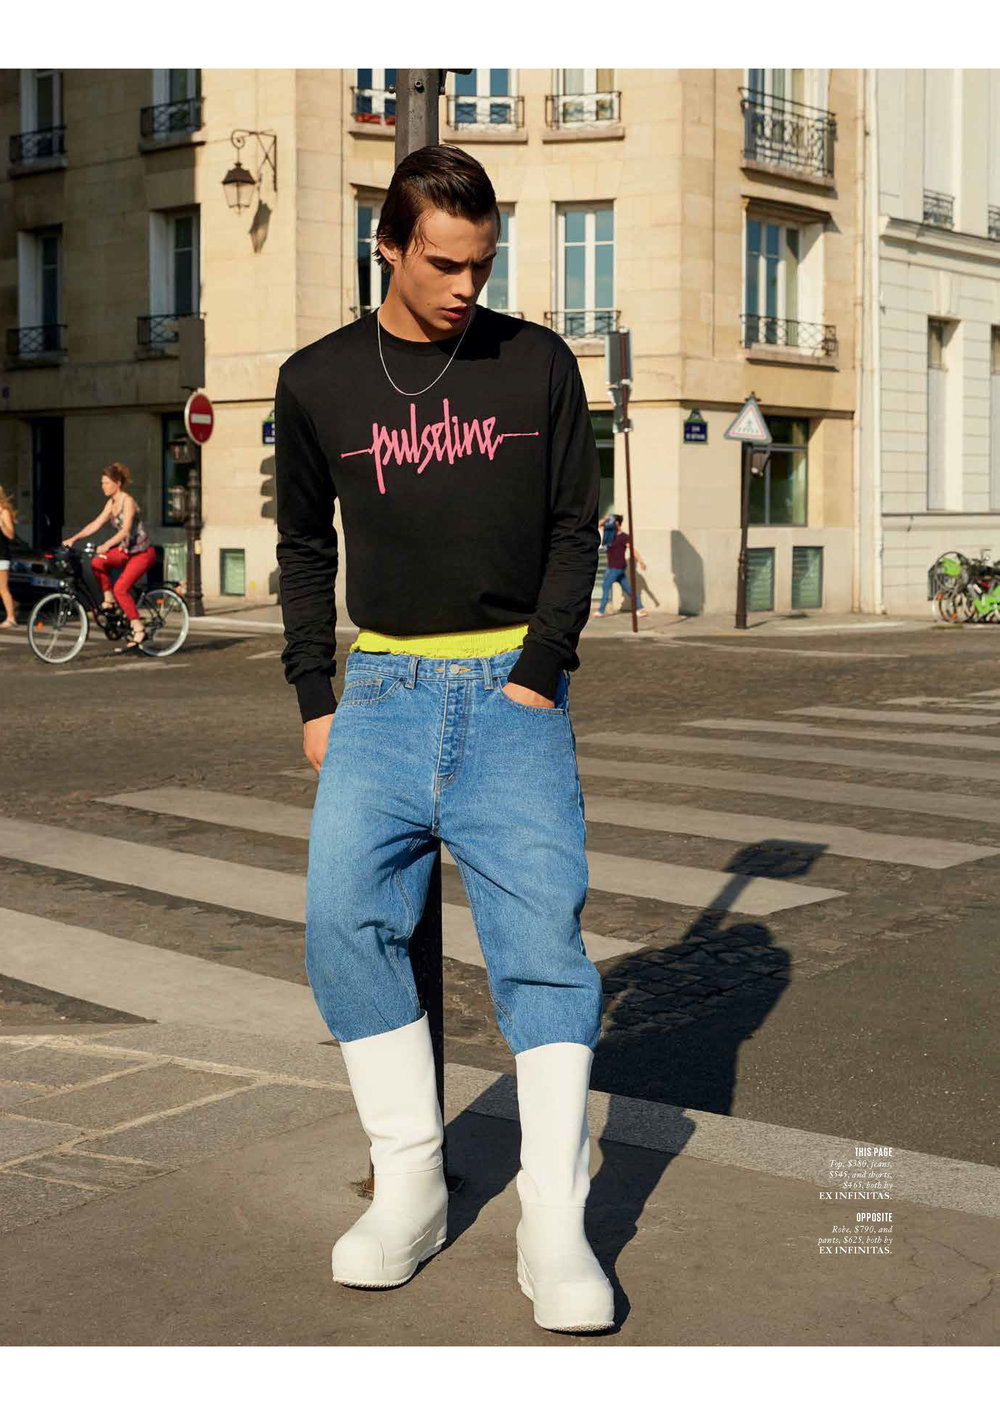 LOUIS BAINES WEARS FW18 PULSELINE T-SHIRT, FIRE REEF BOXER SHORTS AND ESSENTIAL DENIM JEANS